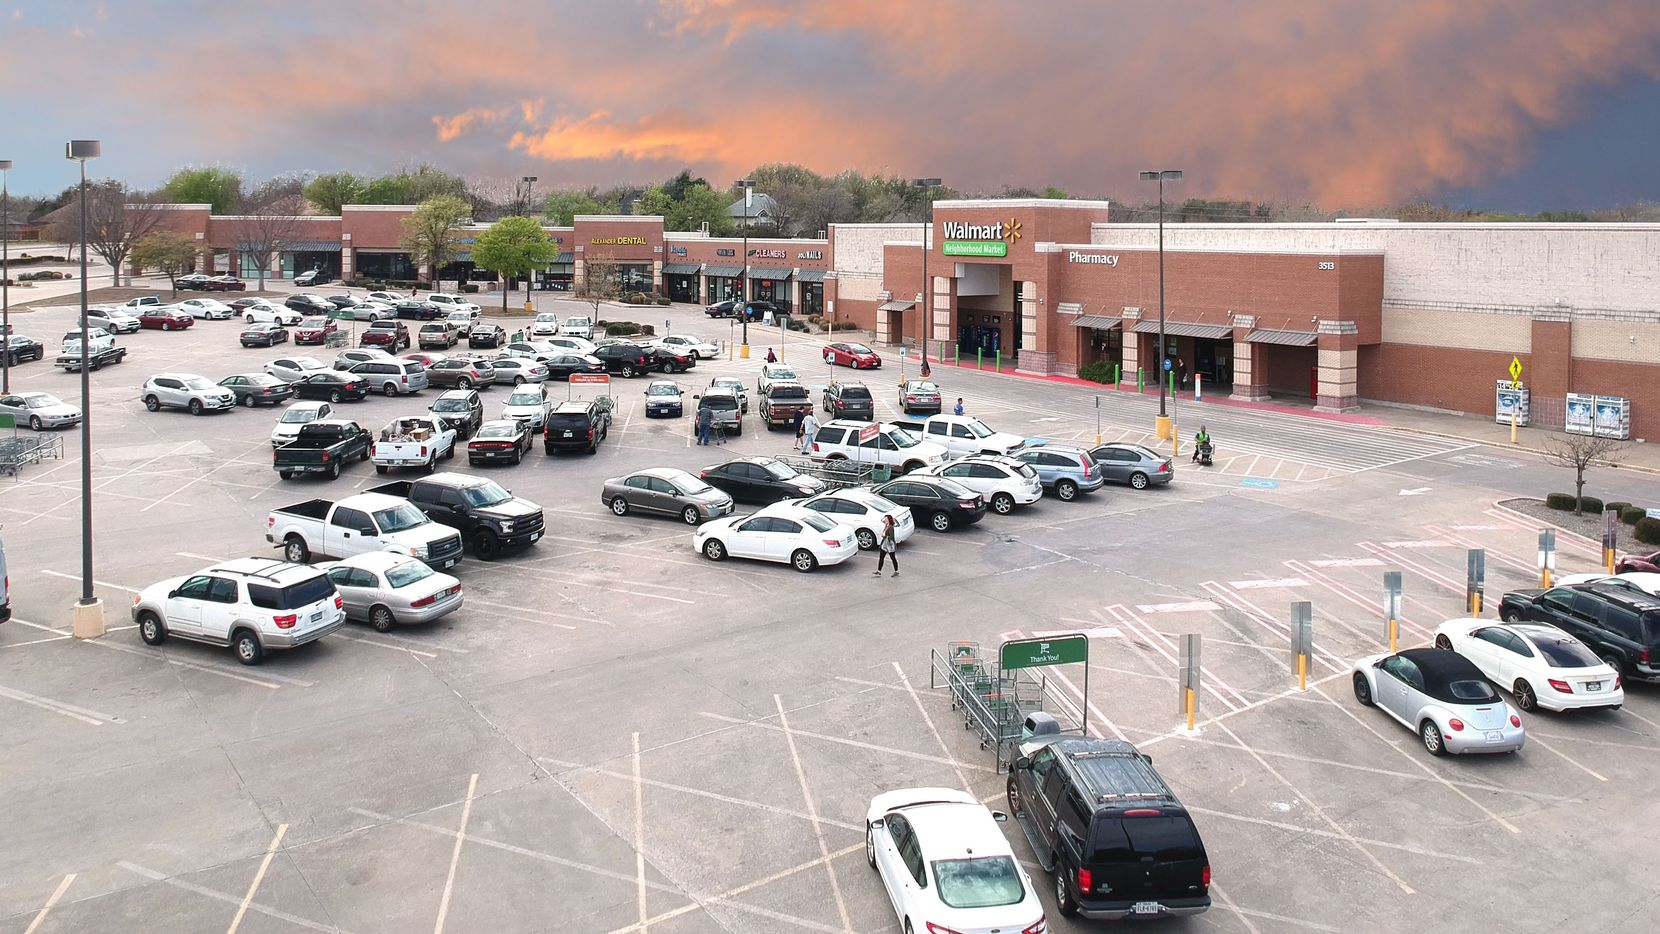 The Shiloh Crossing  community retail center is at the northwest corner of Spring Creek Parkway and Park Boulevard in Plano